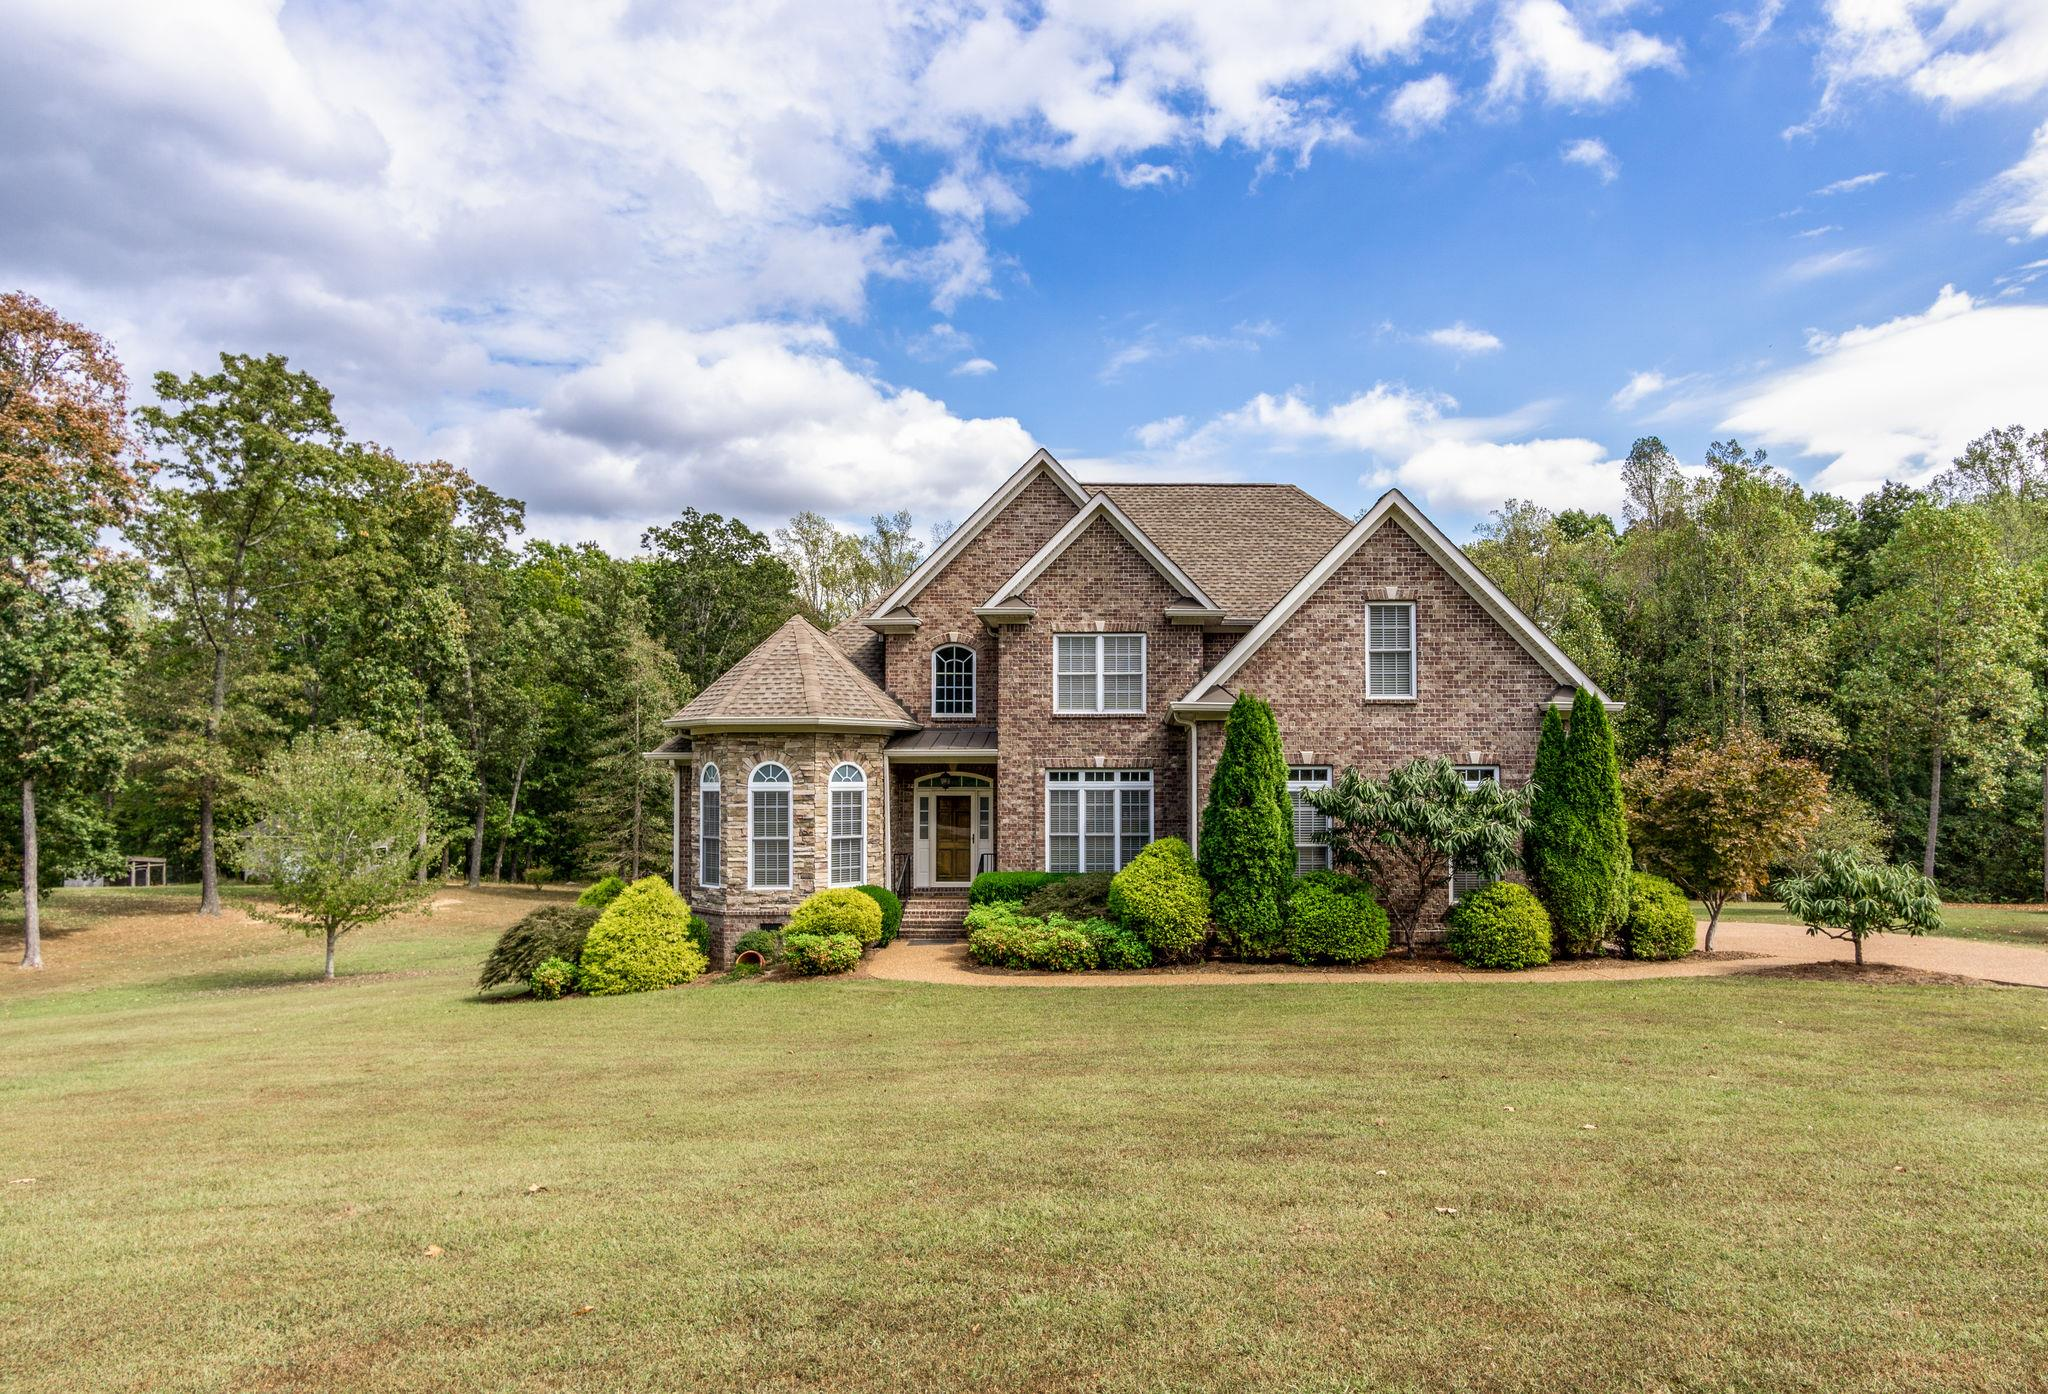 8526 Fairview Ln , Bon Aqua, TN 37025 - Bon Aqua, TN real estate listing